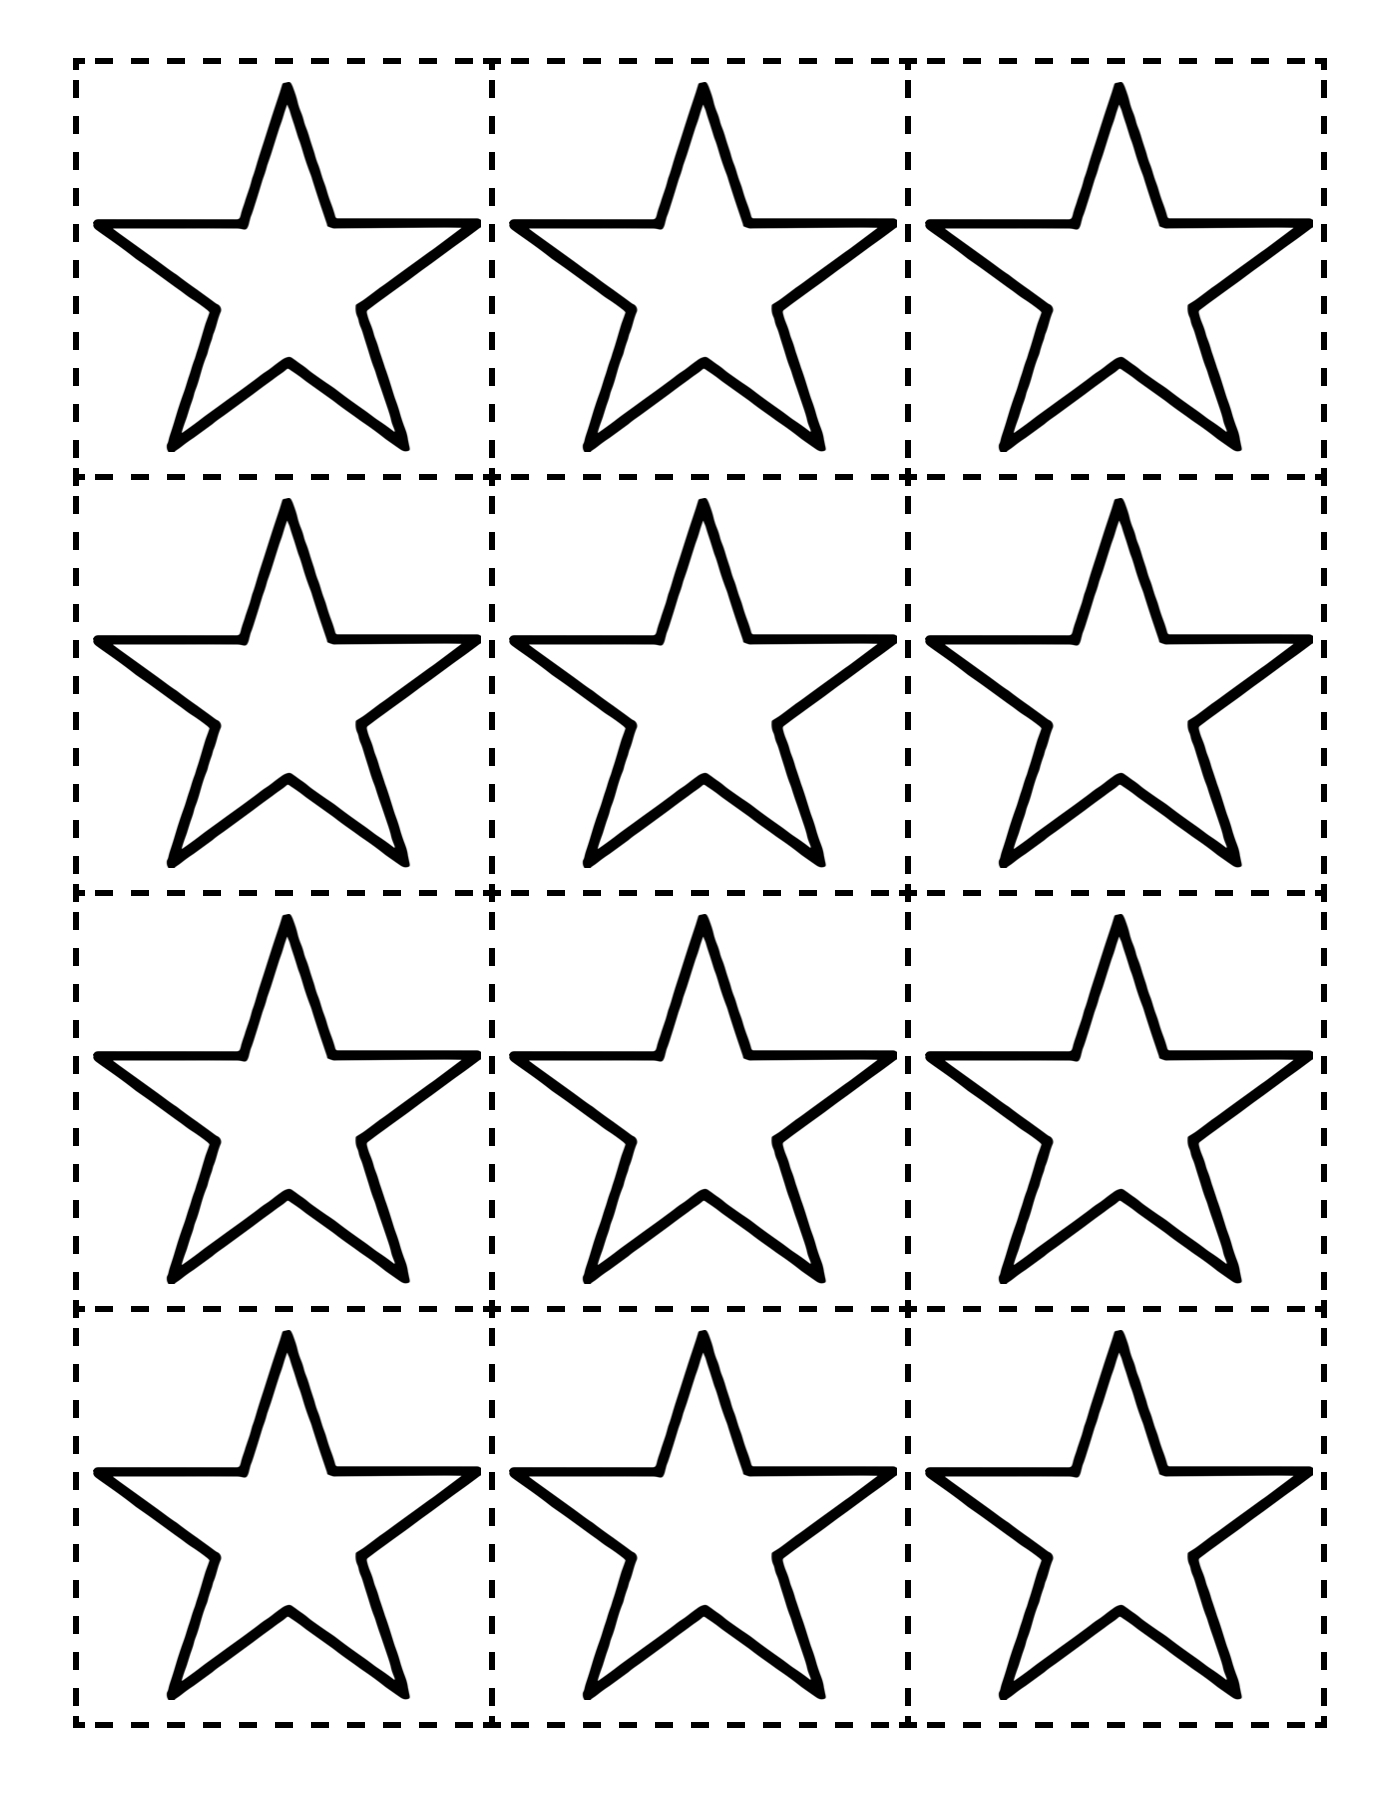 Picture of stars